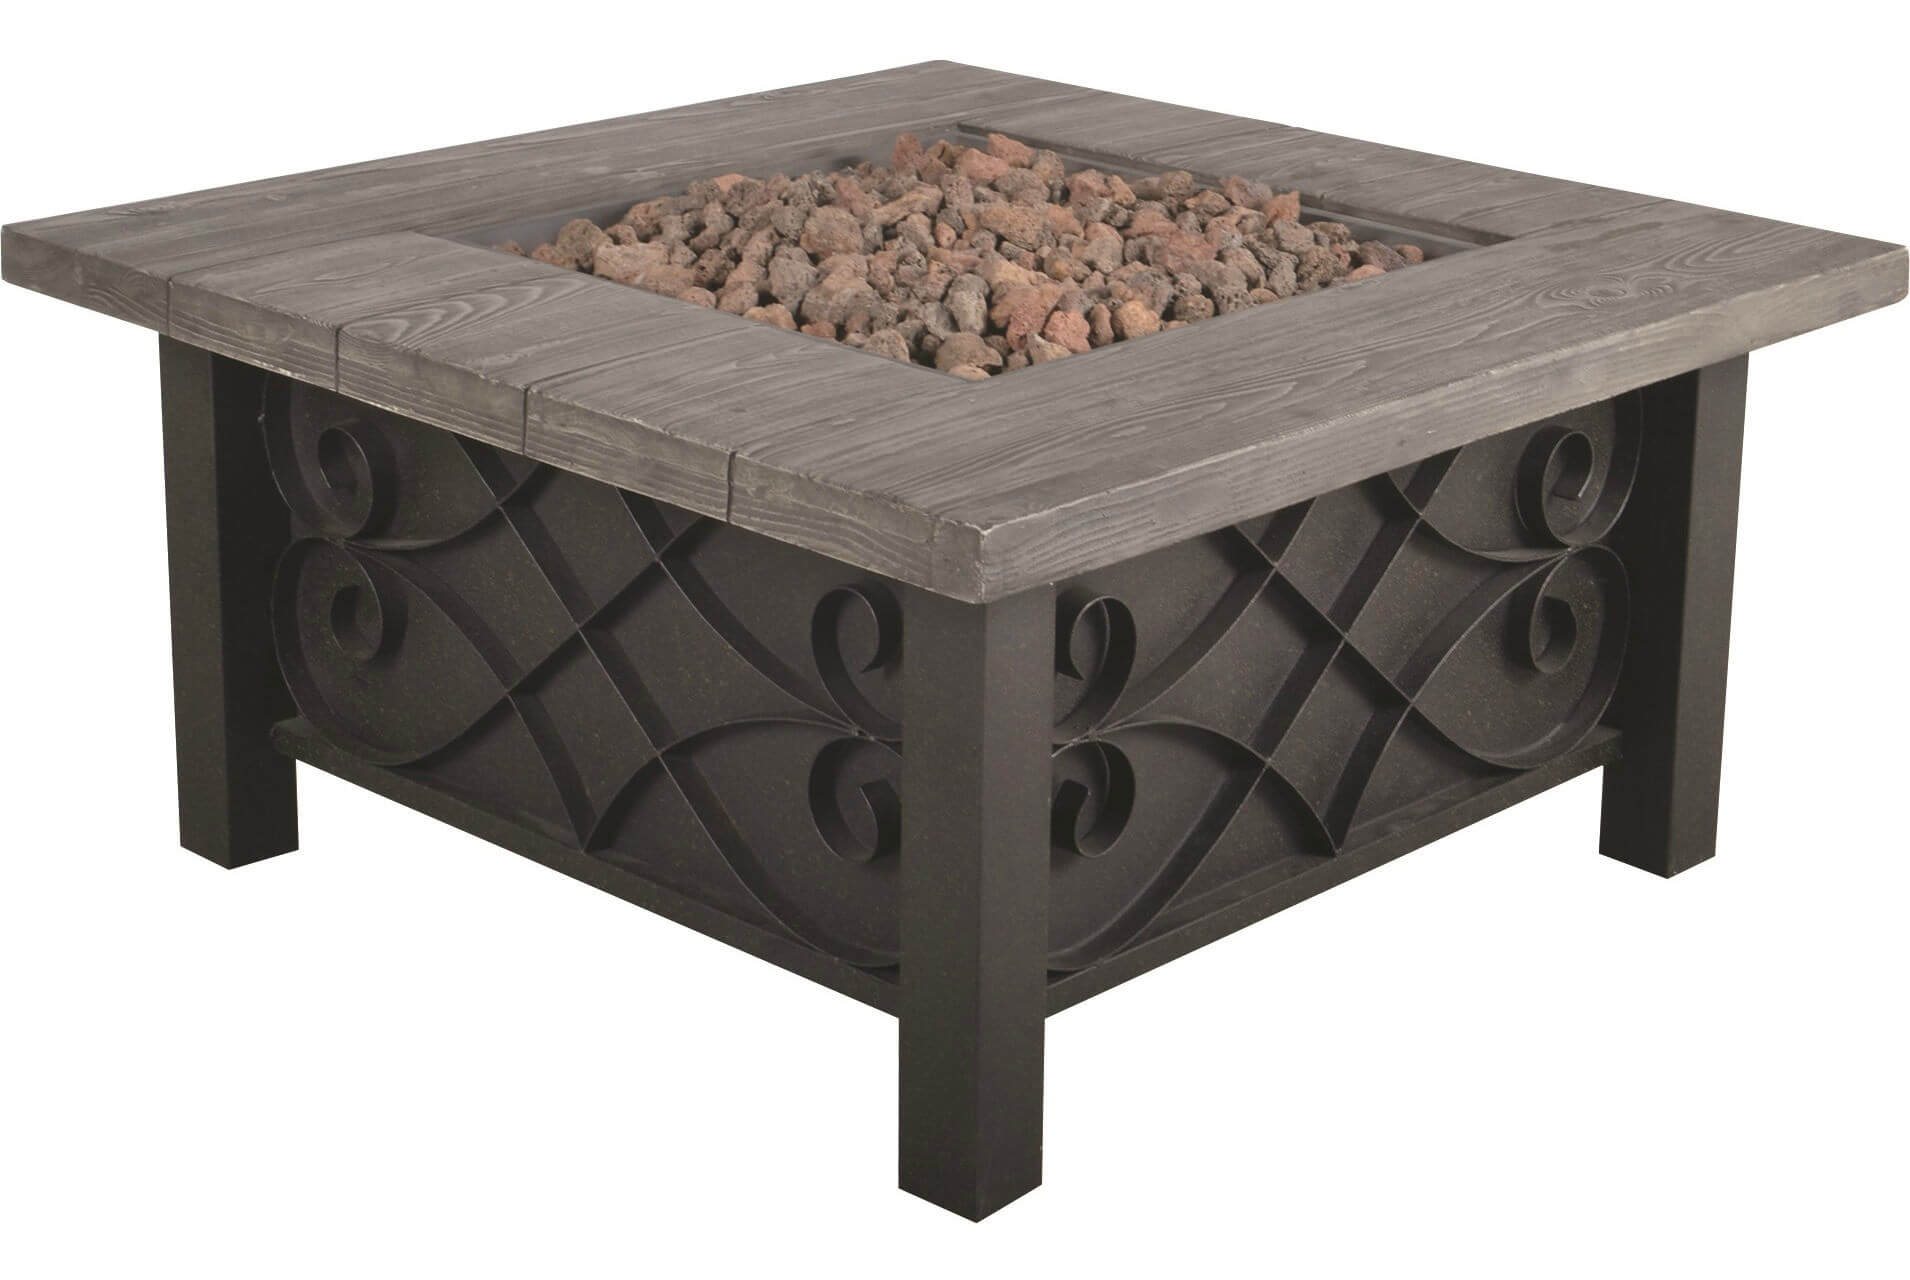 Get This Charming And Rustic Steel Propane Patio Fire Pit With Table Ledge  To Give Your